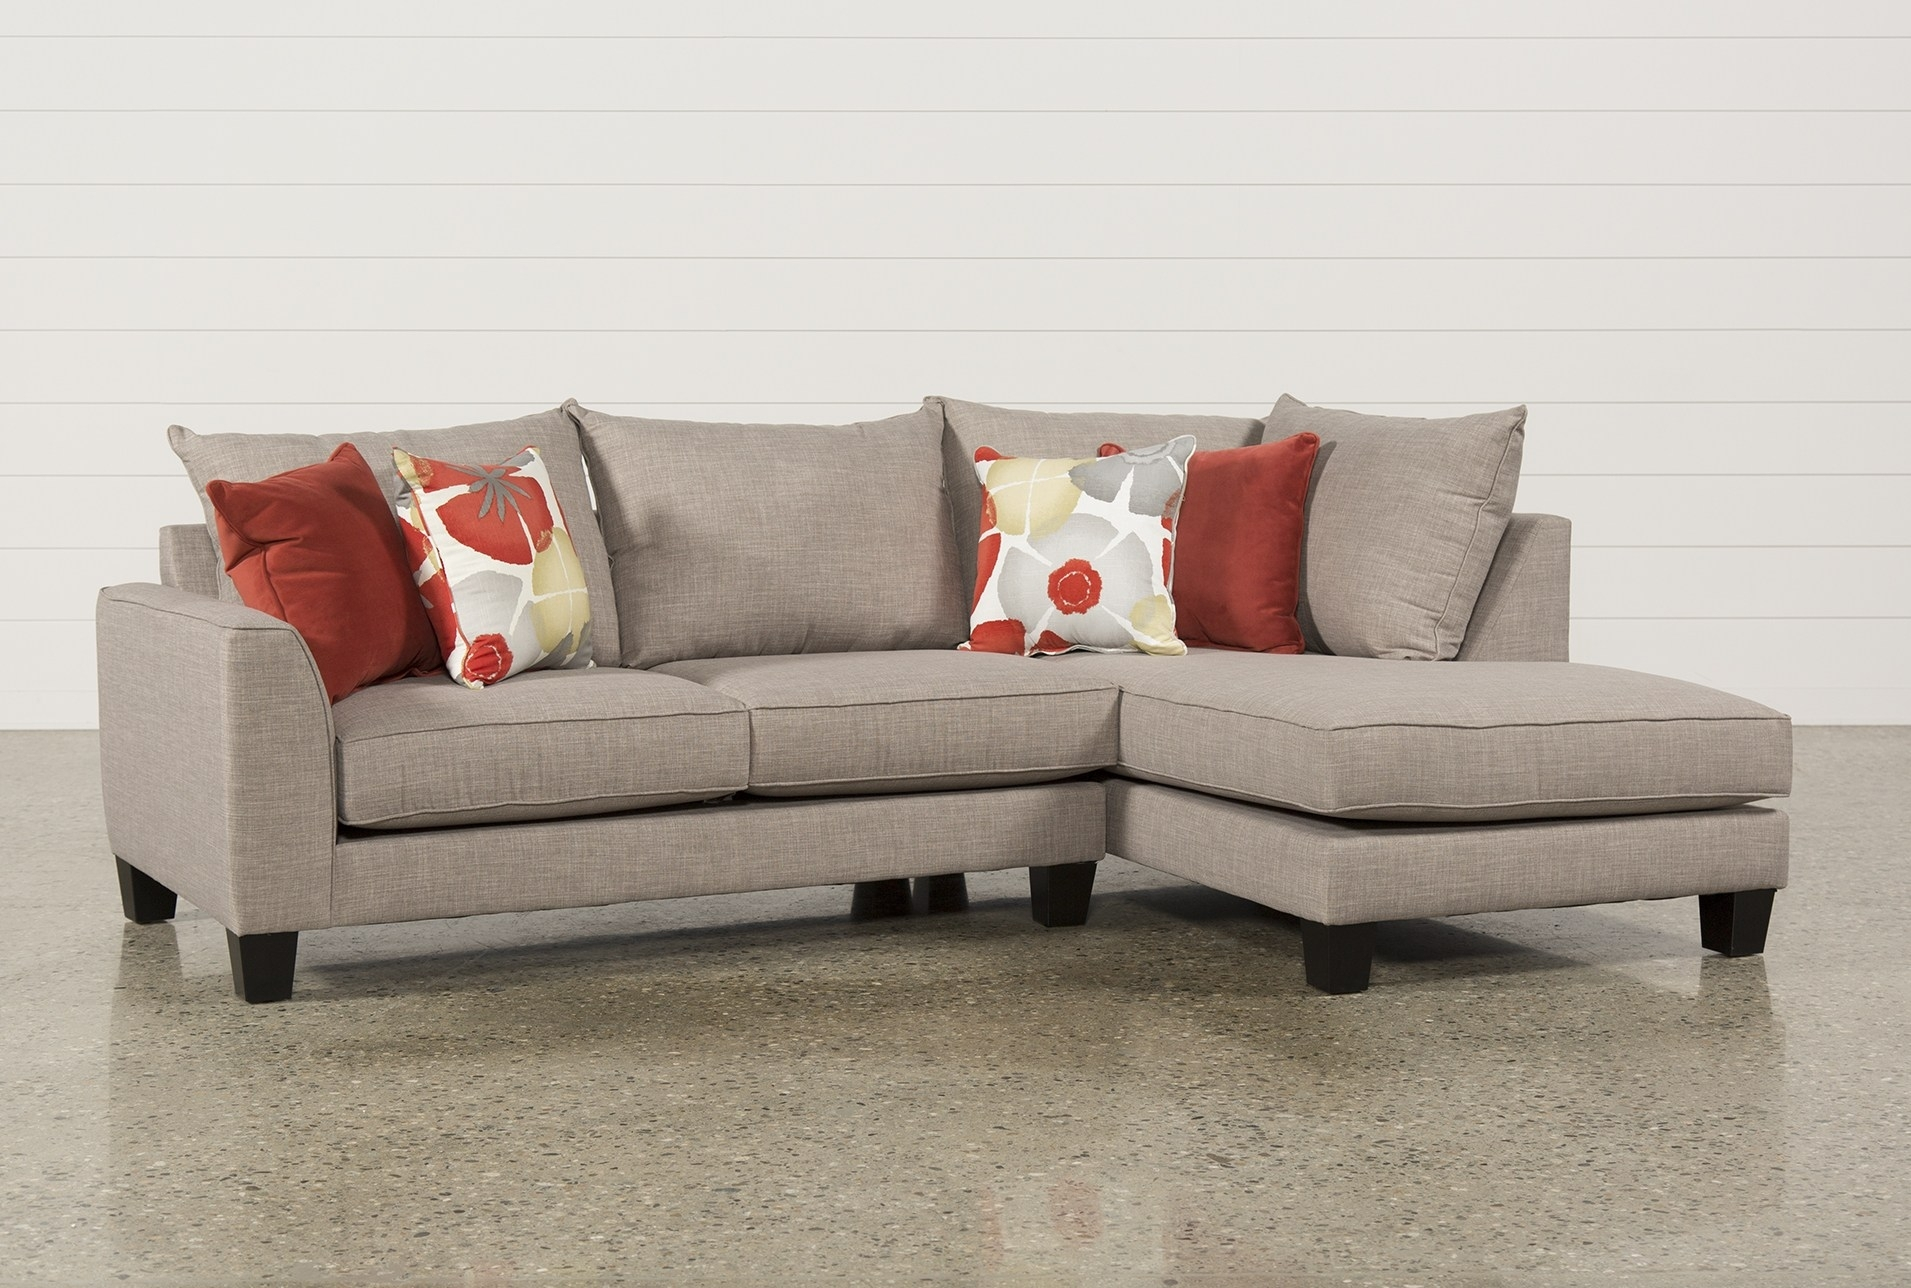 Mcdade Graphite 2 Piece Sectional – Geek Tattoos with regard to Evan 2 Piece Sectionals With Raf Chaise (Image 25 of 30)